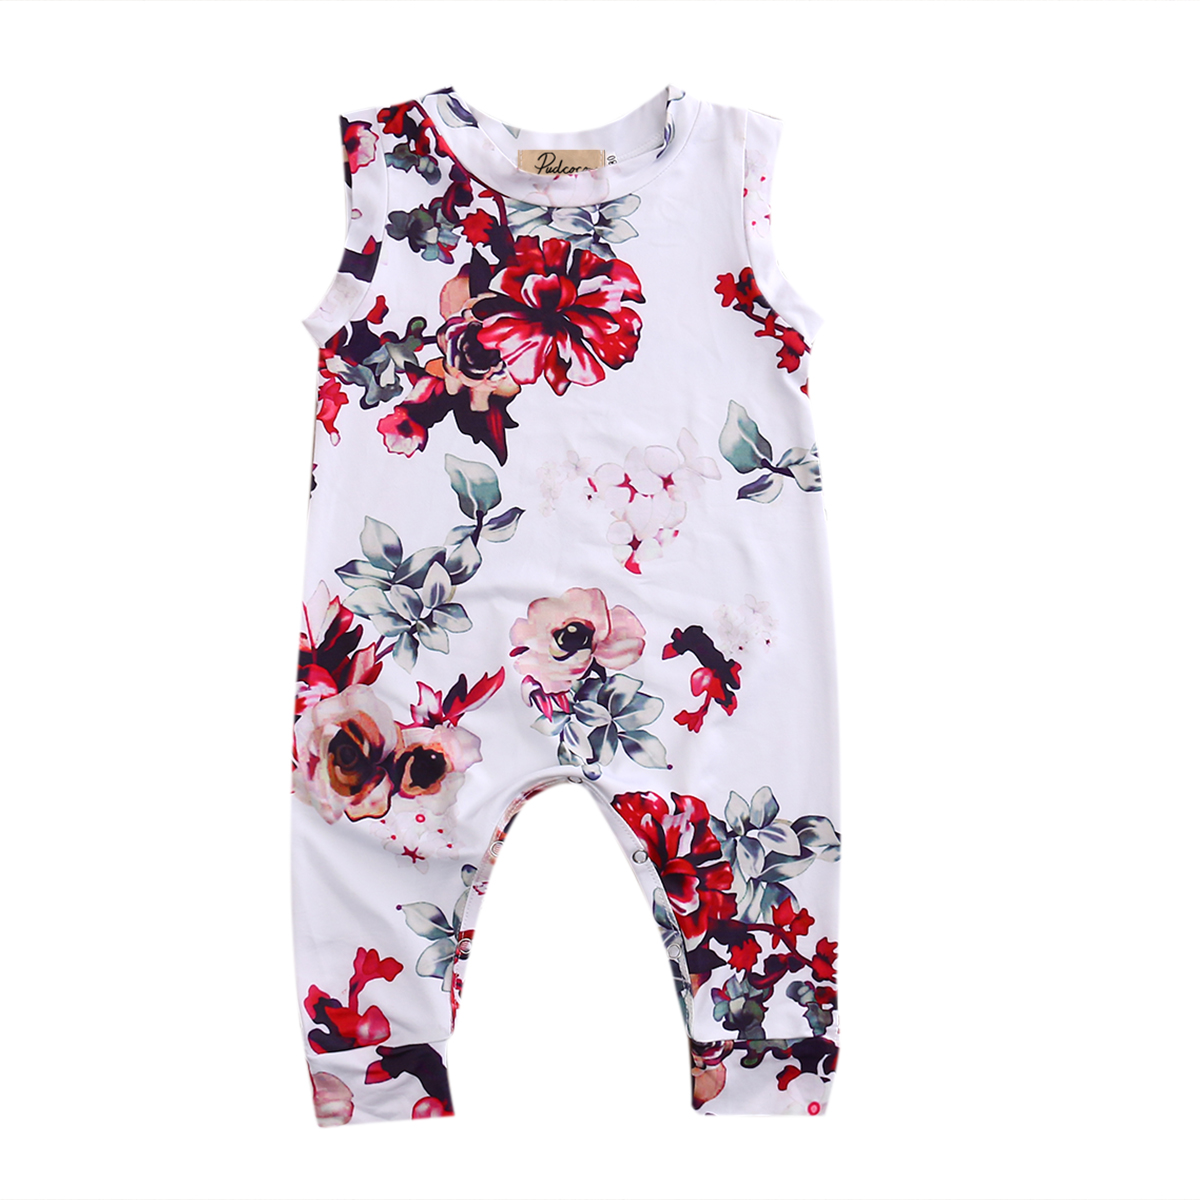 Summer Infant Newborn Kids Summer Toddler Baby Boys Girls Romper Outfits Sunsuit Jumpsuit Cotton Clothes baby romper sets for girls newborn infant bebe clothes toddler children clothes cotton girls jumpsuit clothes suit for 3 24m